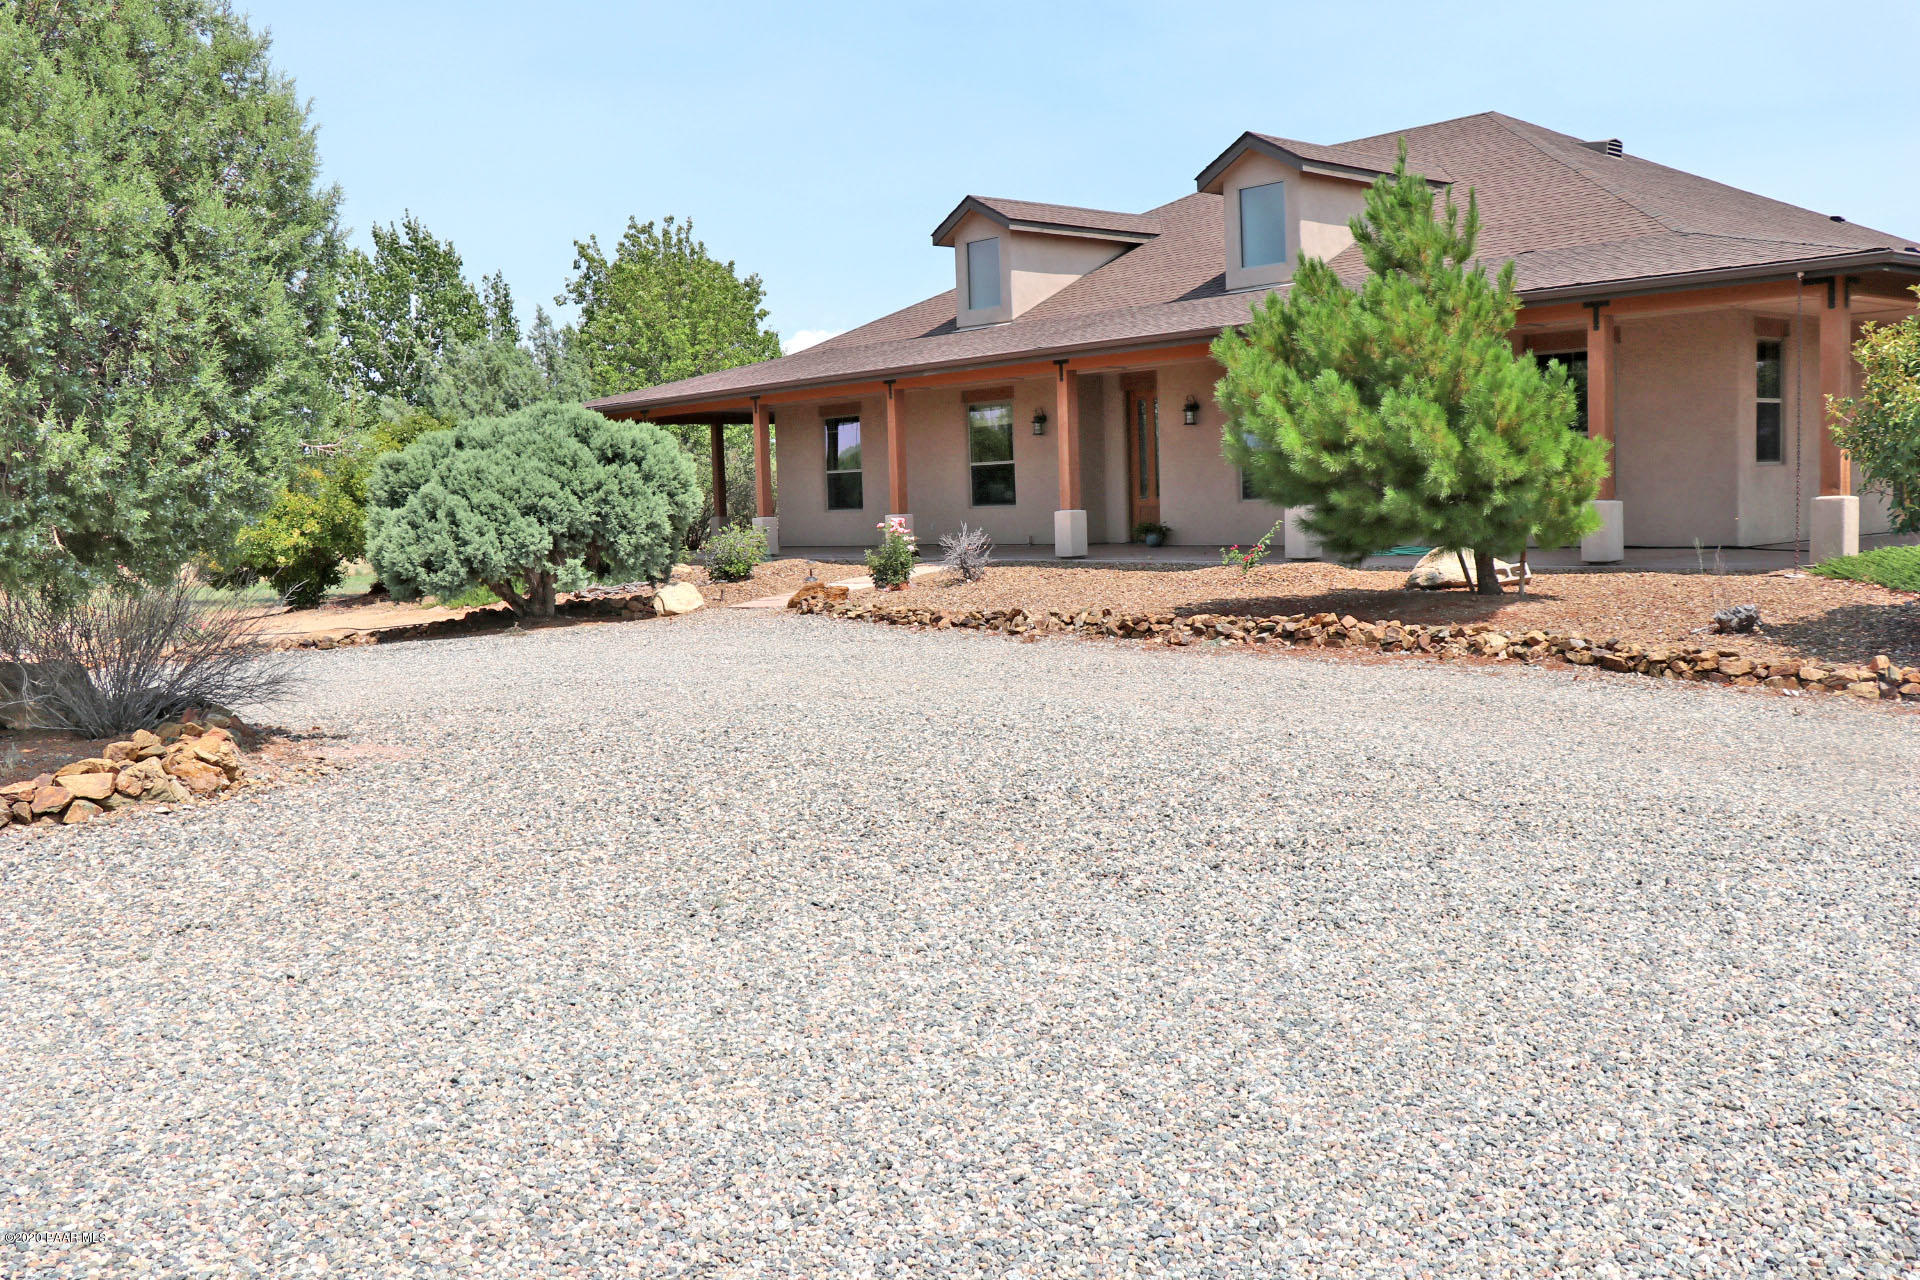 Photo of 17001 Crossroads Ranch, Prescott, AZ 86305